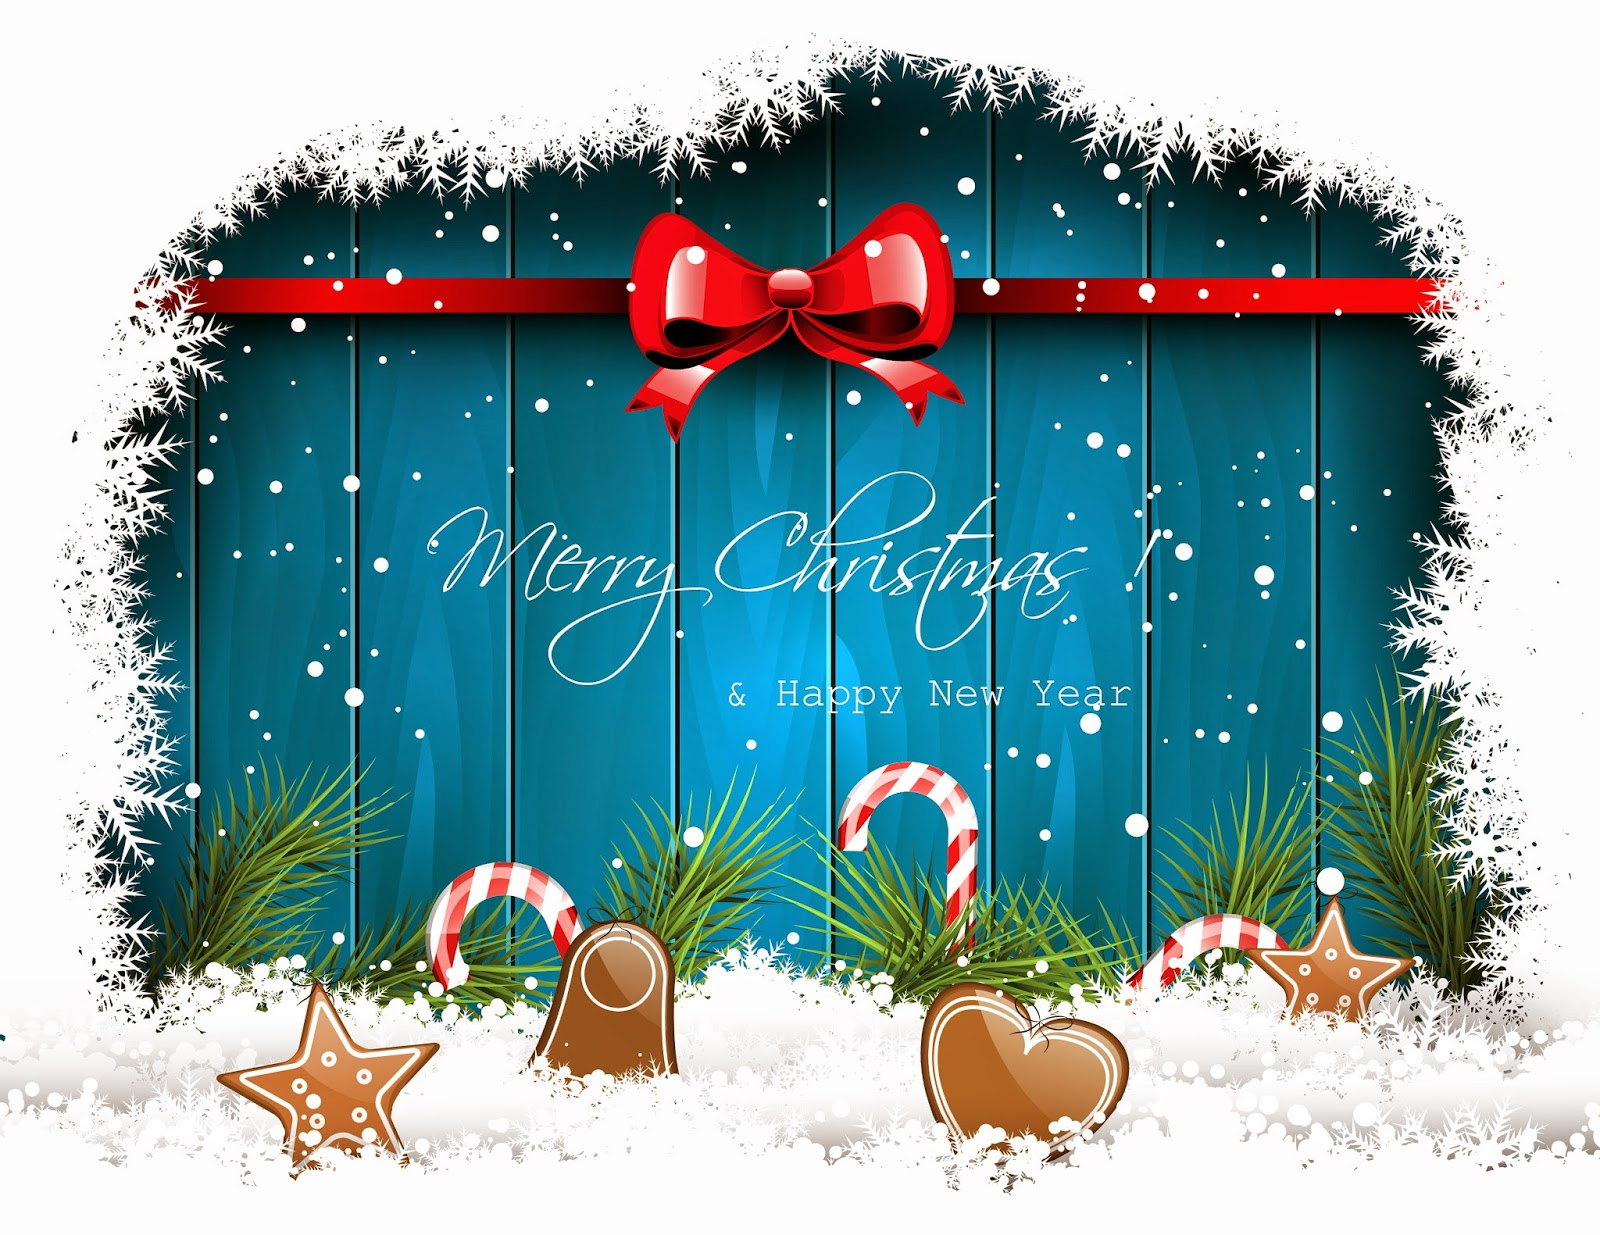 I wish you a merry christmas and a happy new year greetings images wish merry christmas happy new year winter theme m4hsunfo